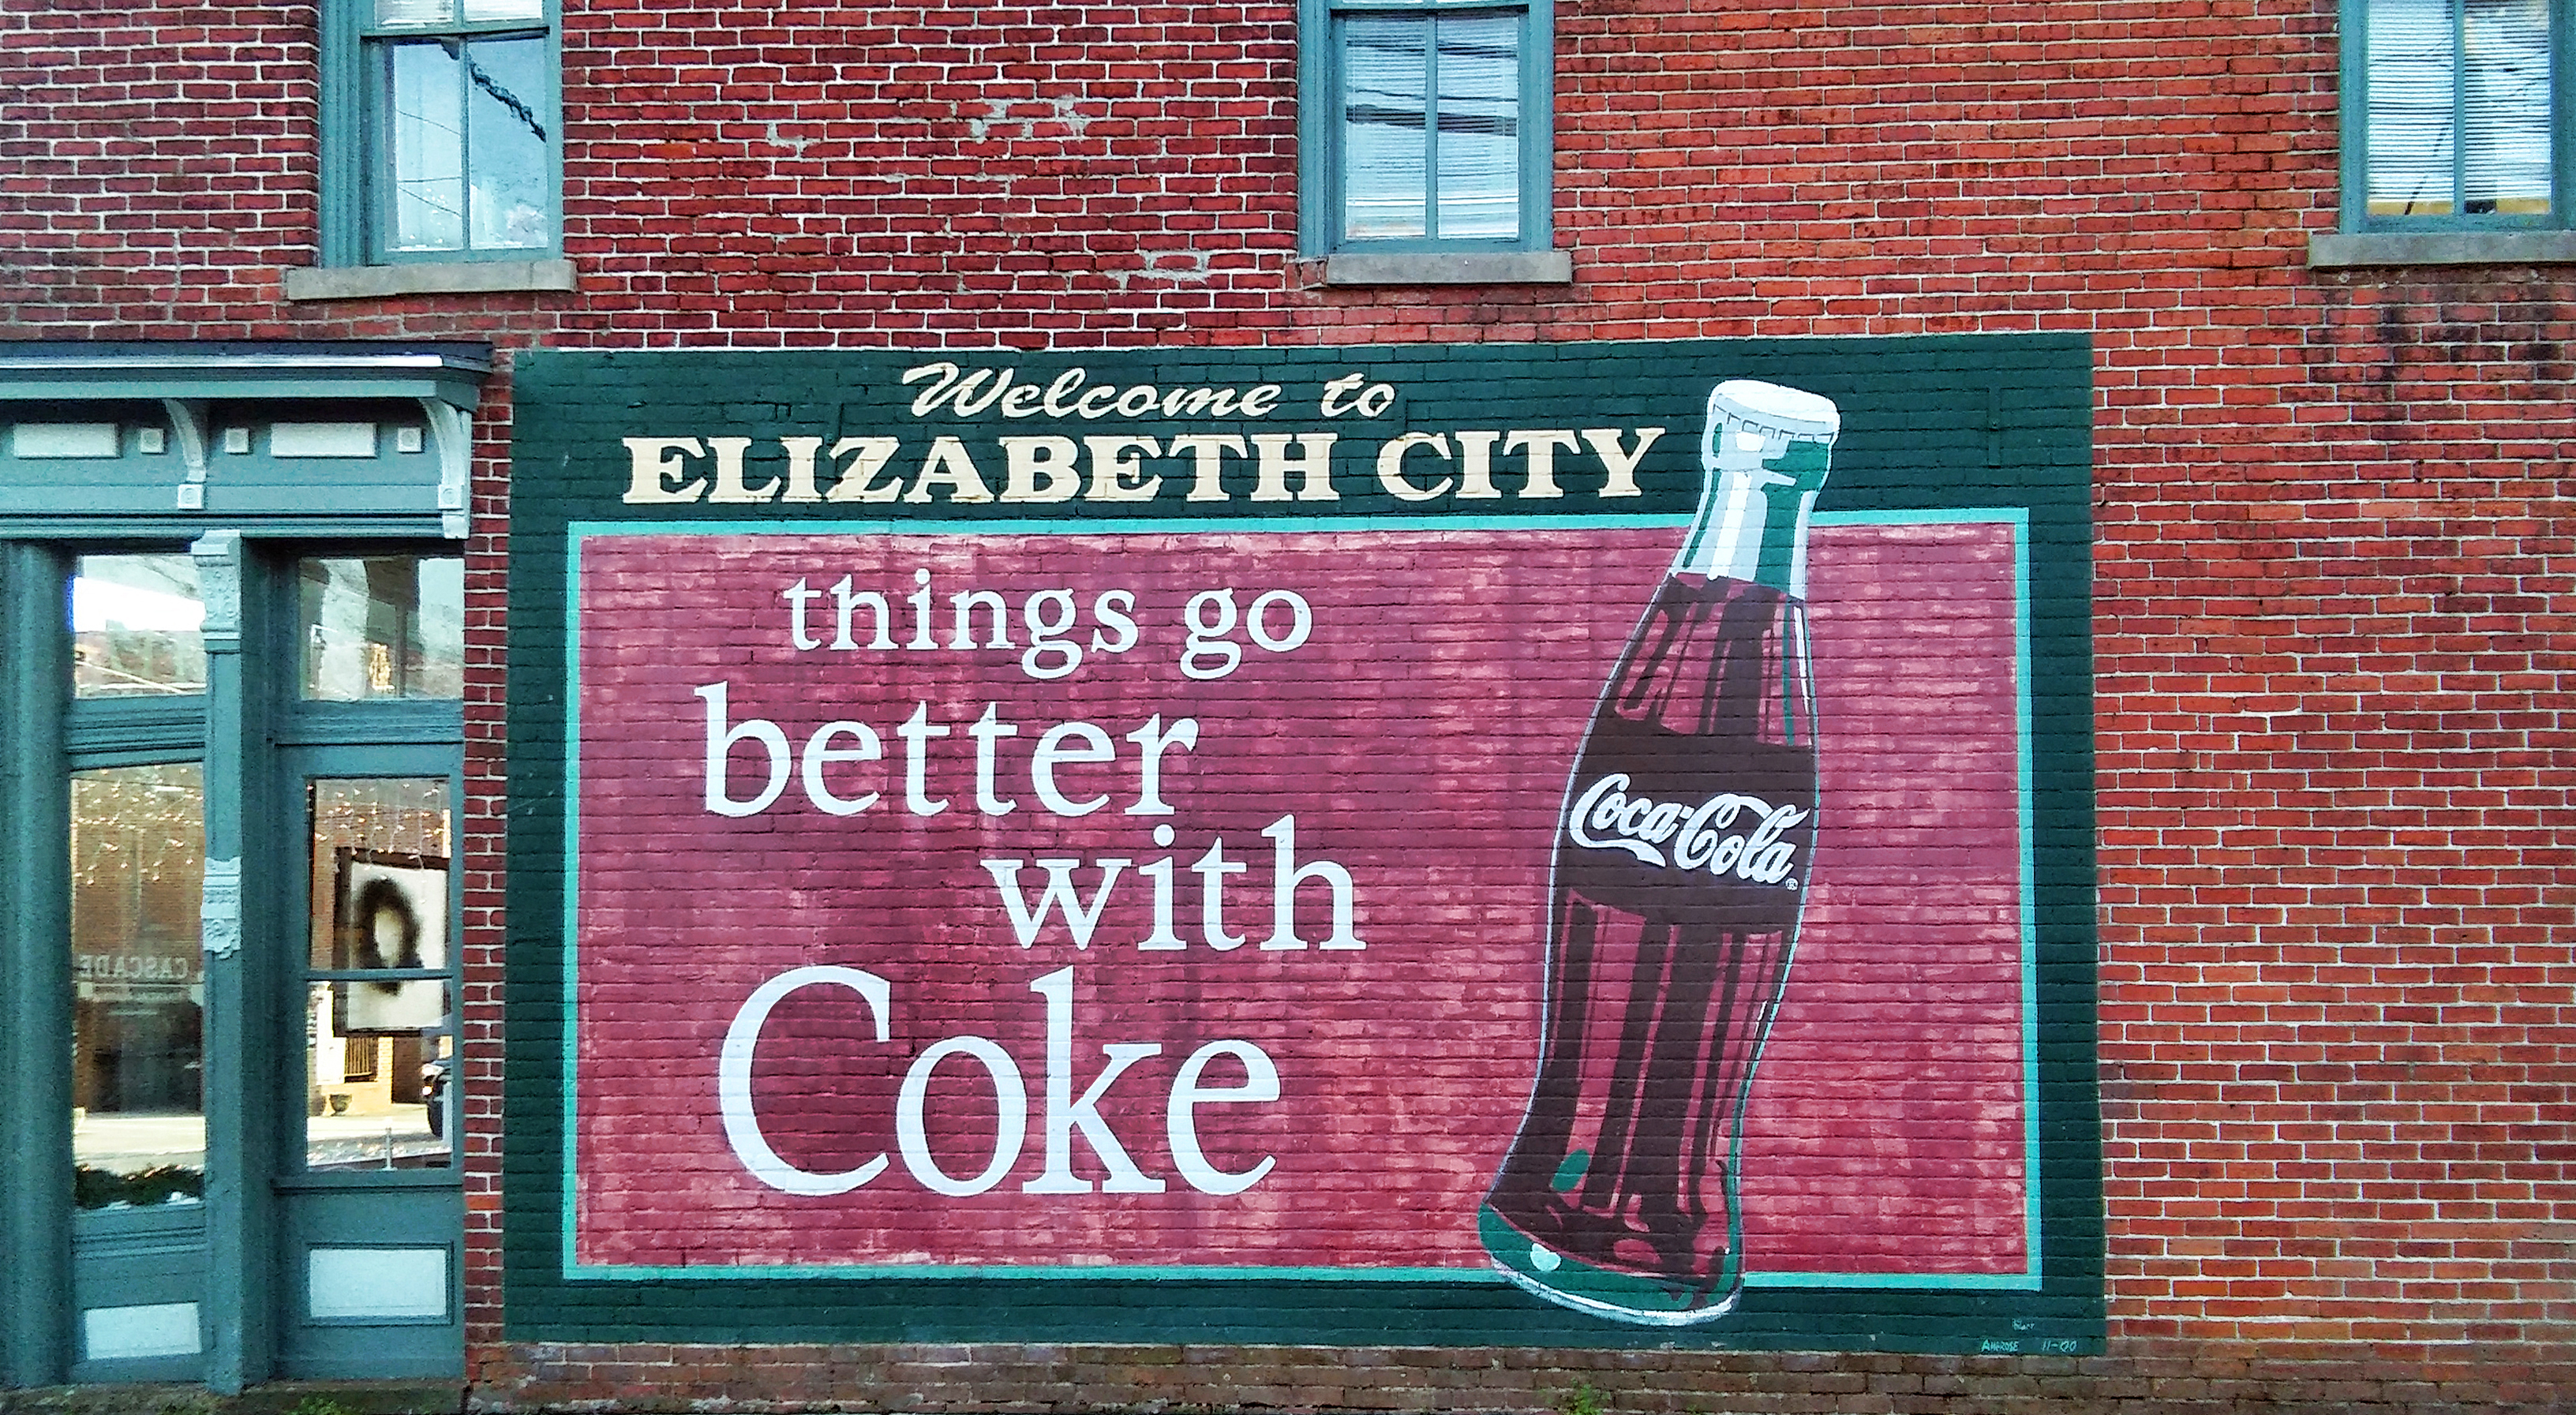 Elizabeth City Coke Mural